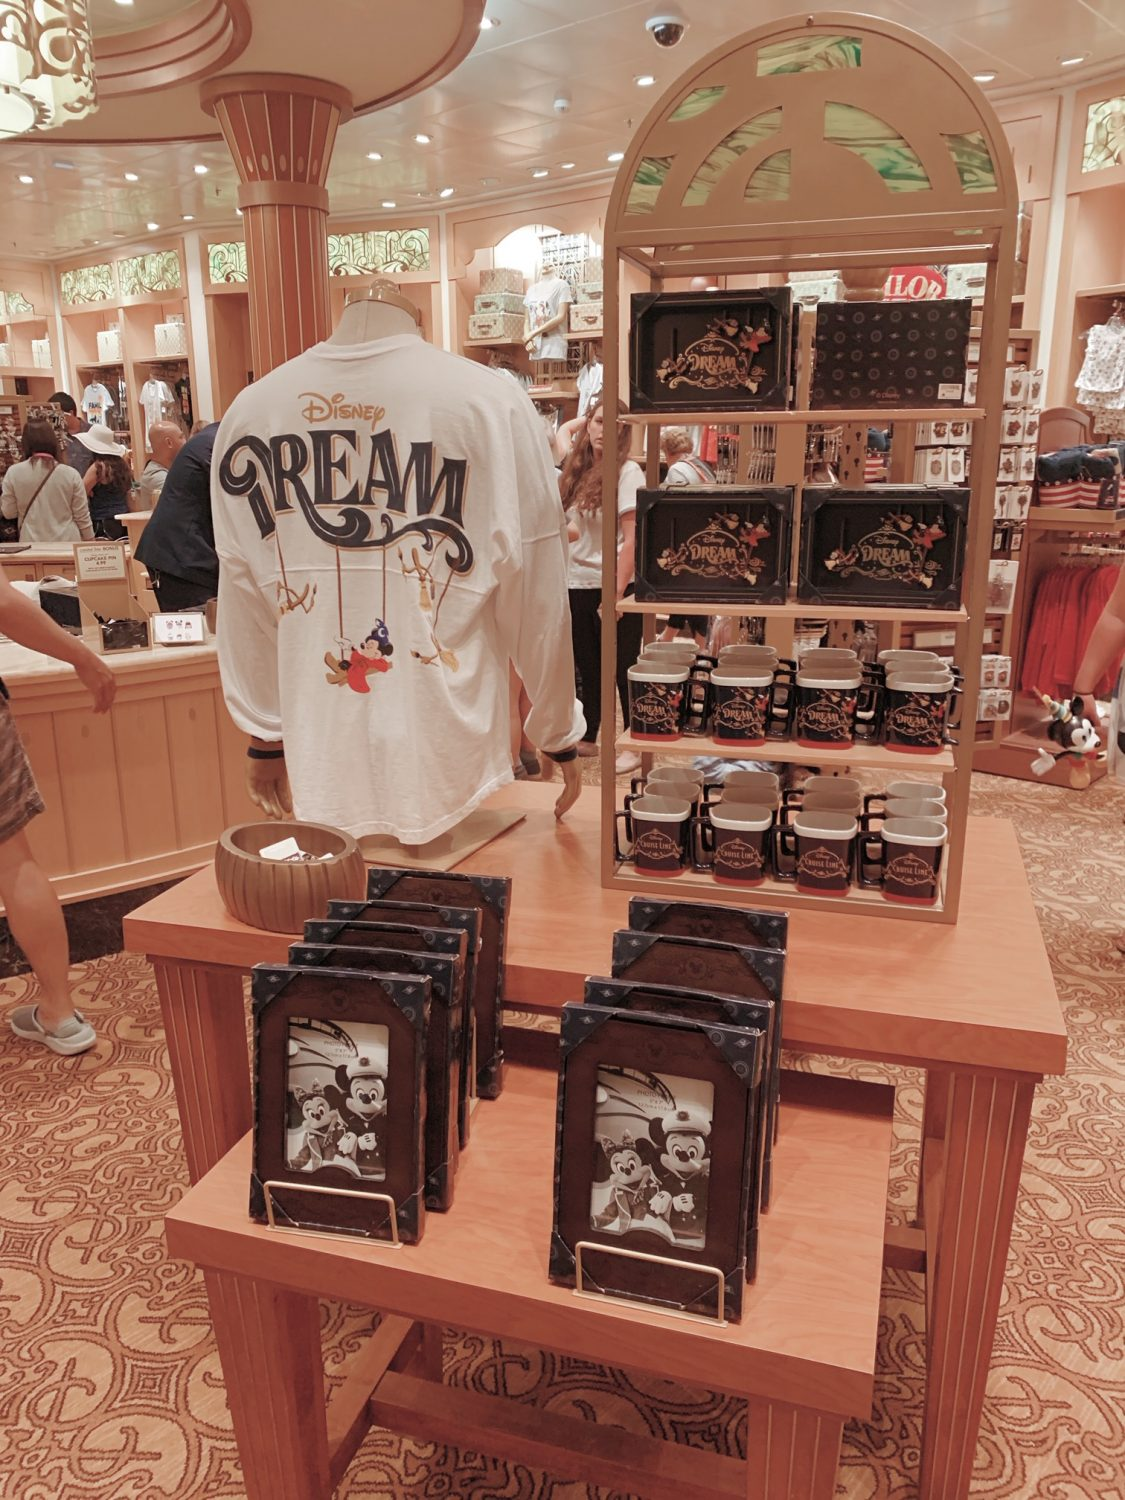 Disney Dream Spirit Jersey Disney Cruise Line